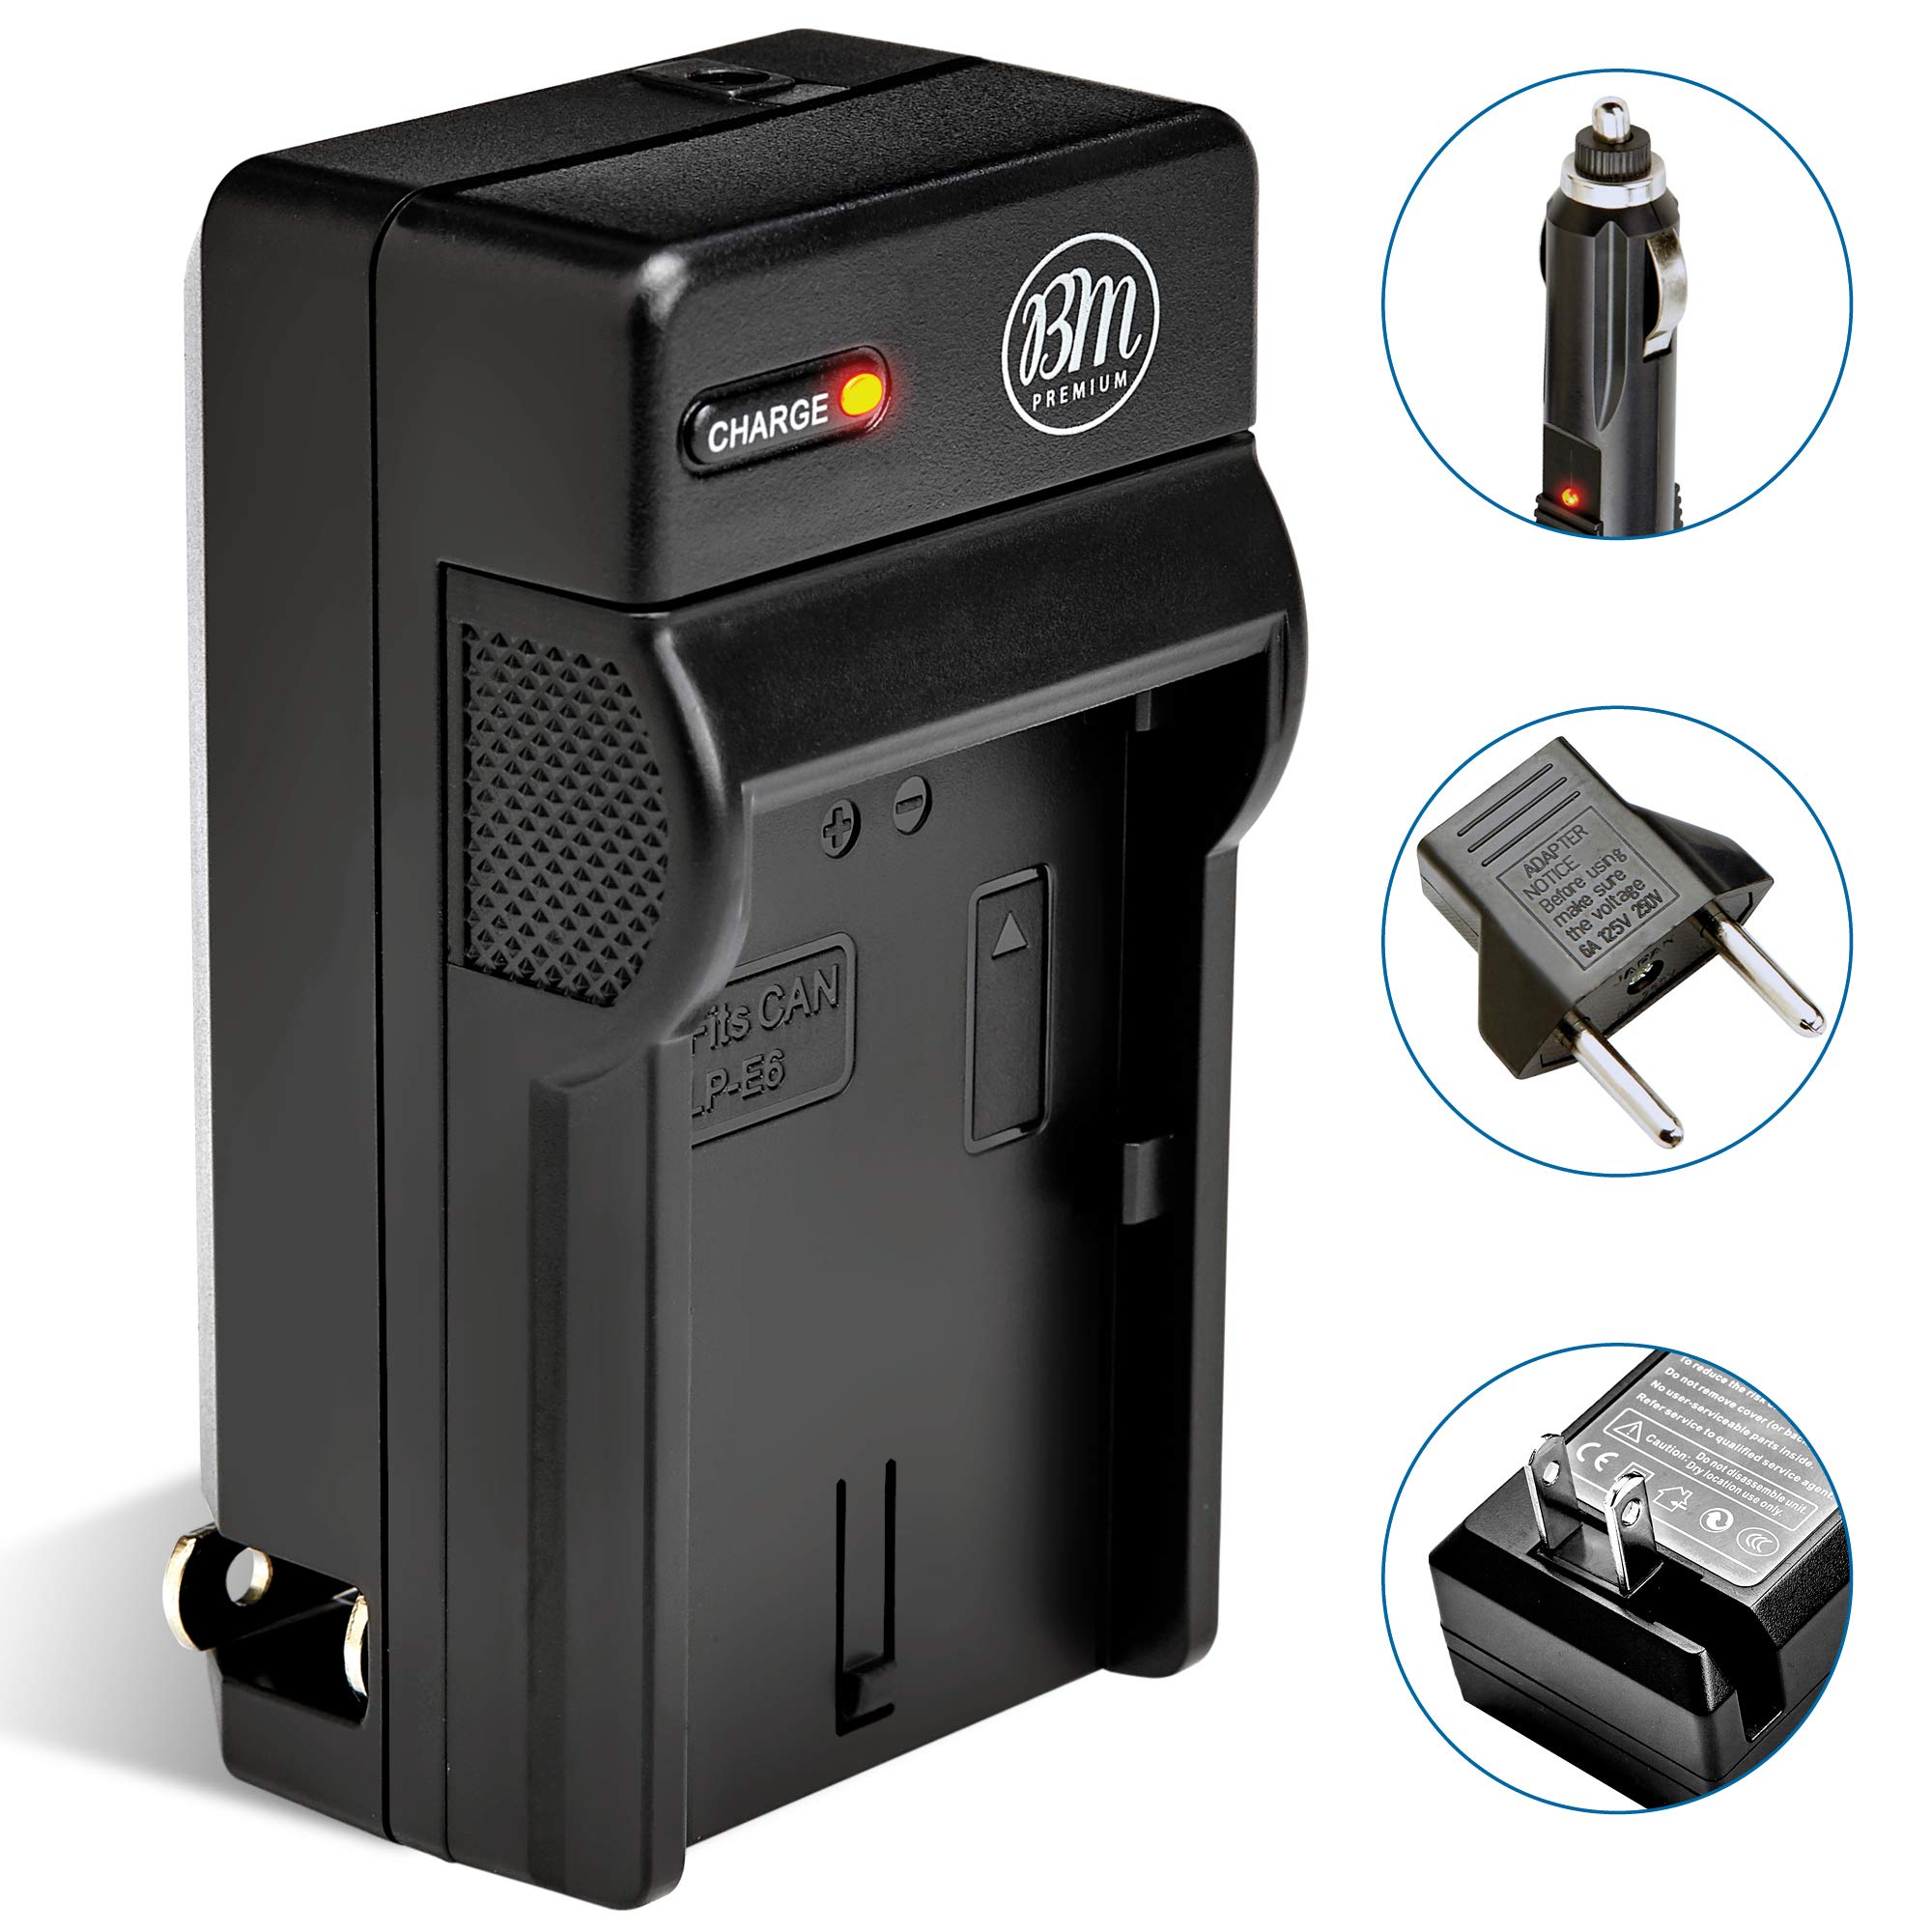 BM LP-E6N Battery Charger for Canon EOS R, EOS R5, EOS 90D, EOS 60D, EOS 70D, EOS 80D, EOS 5D II, EOS 5D III, EOS 5D IV, EOS 5Ds, EOS 6D, EOS 6D Mark II, EOS 7D, EOS 7D Mark II, C700, XC10 XC15 Camera